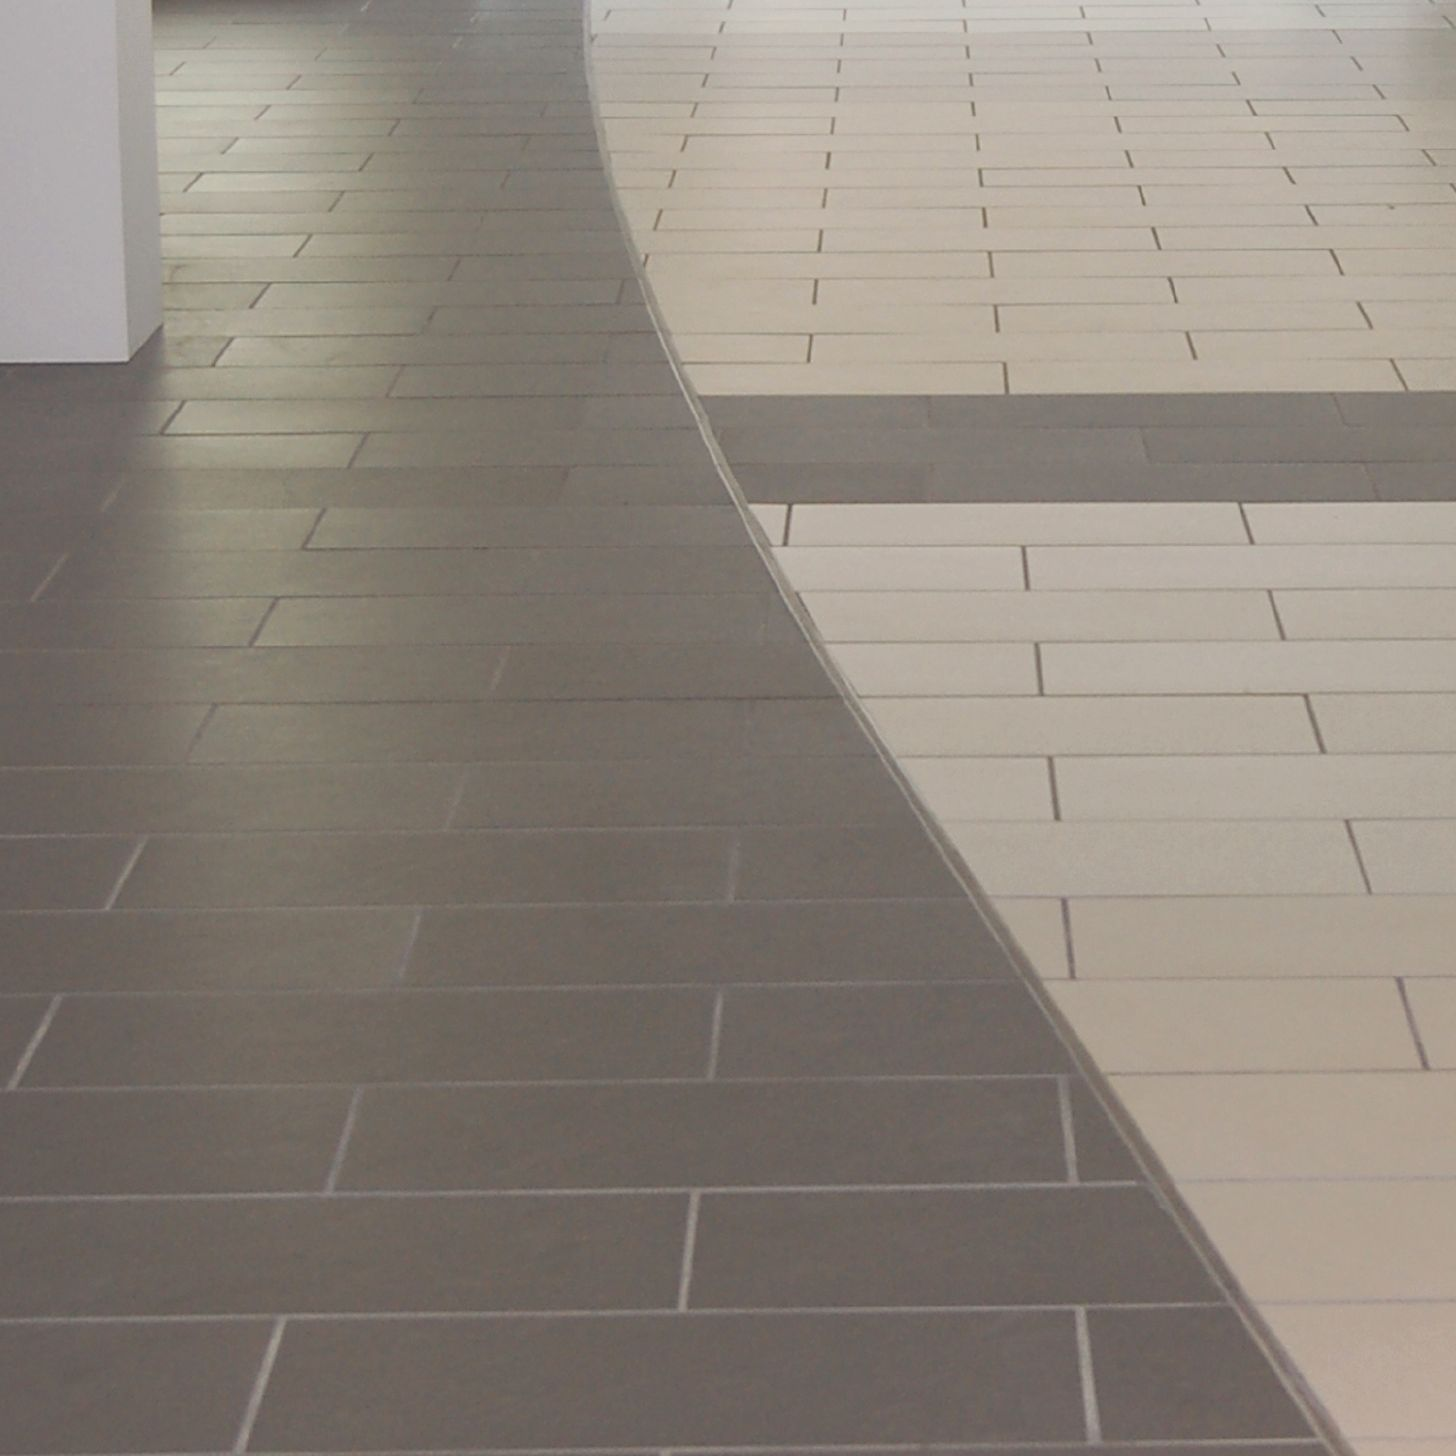 Heated floors schluter transitions between floor surfaces and at thresholds are particularly vulnerable to damage schluter profiles provide edge protection and transitioning at dailygadgetfo Images